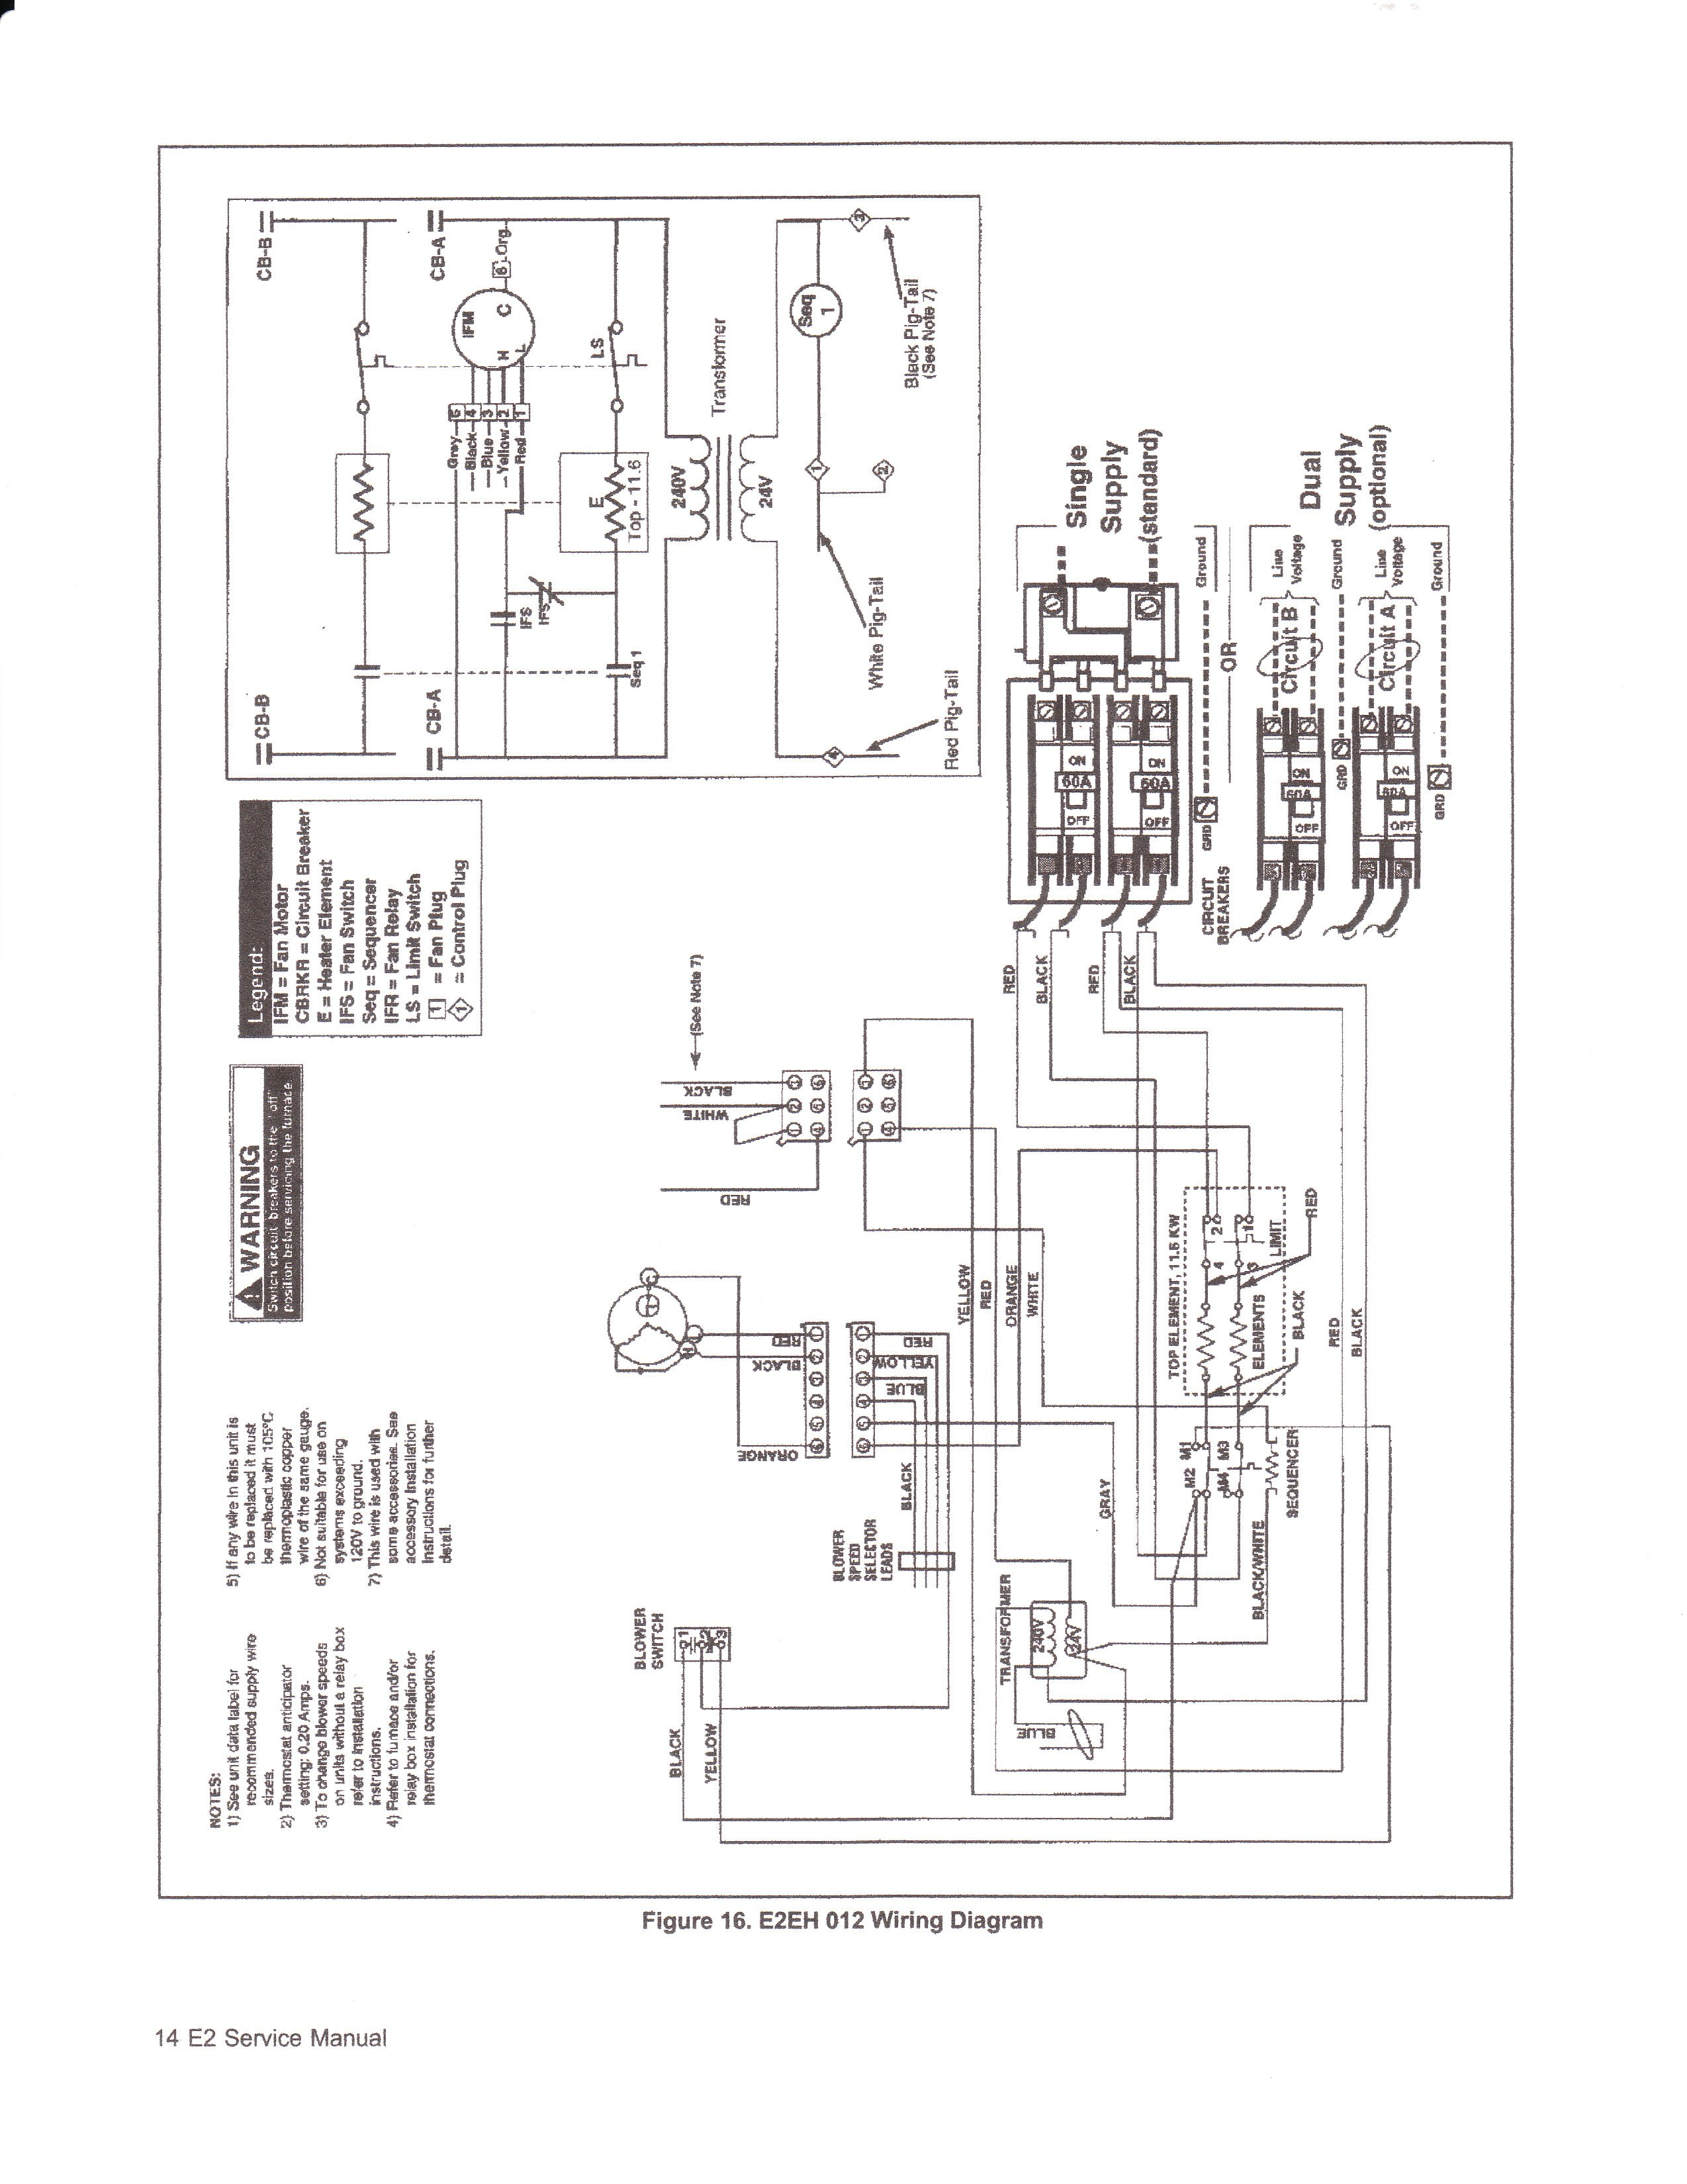 nordyne air handler wiring diagram images electric furnace wiring diagrams lzk gallery